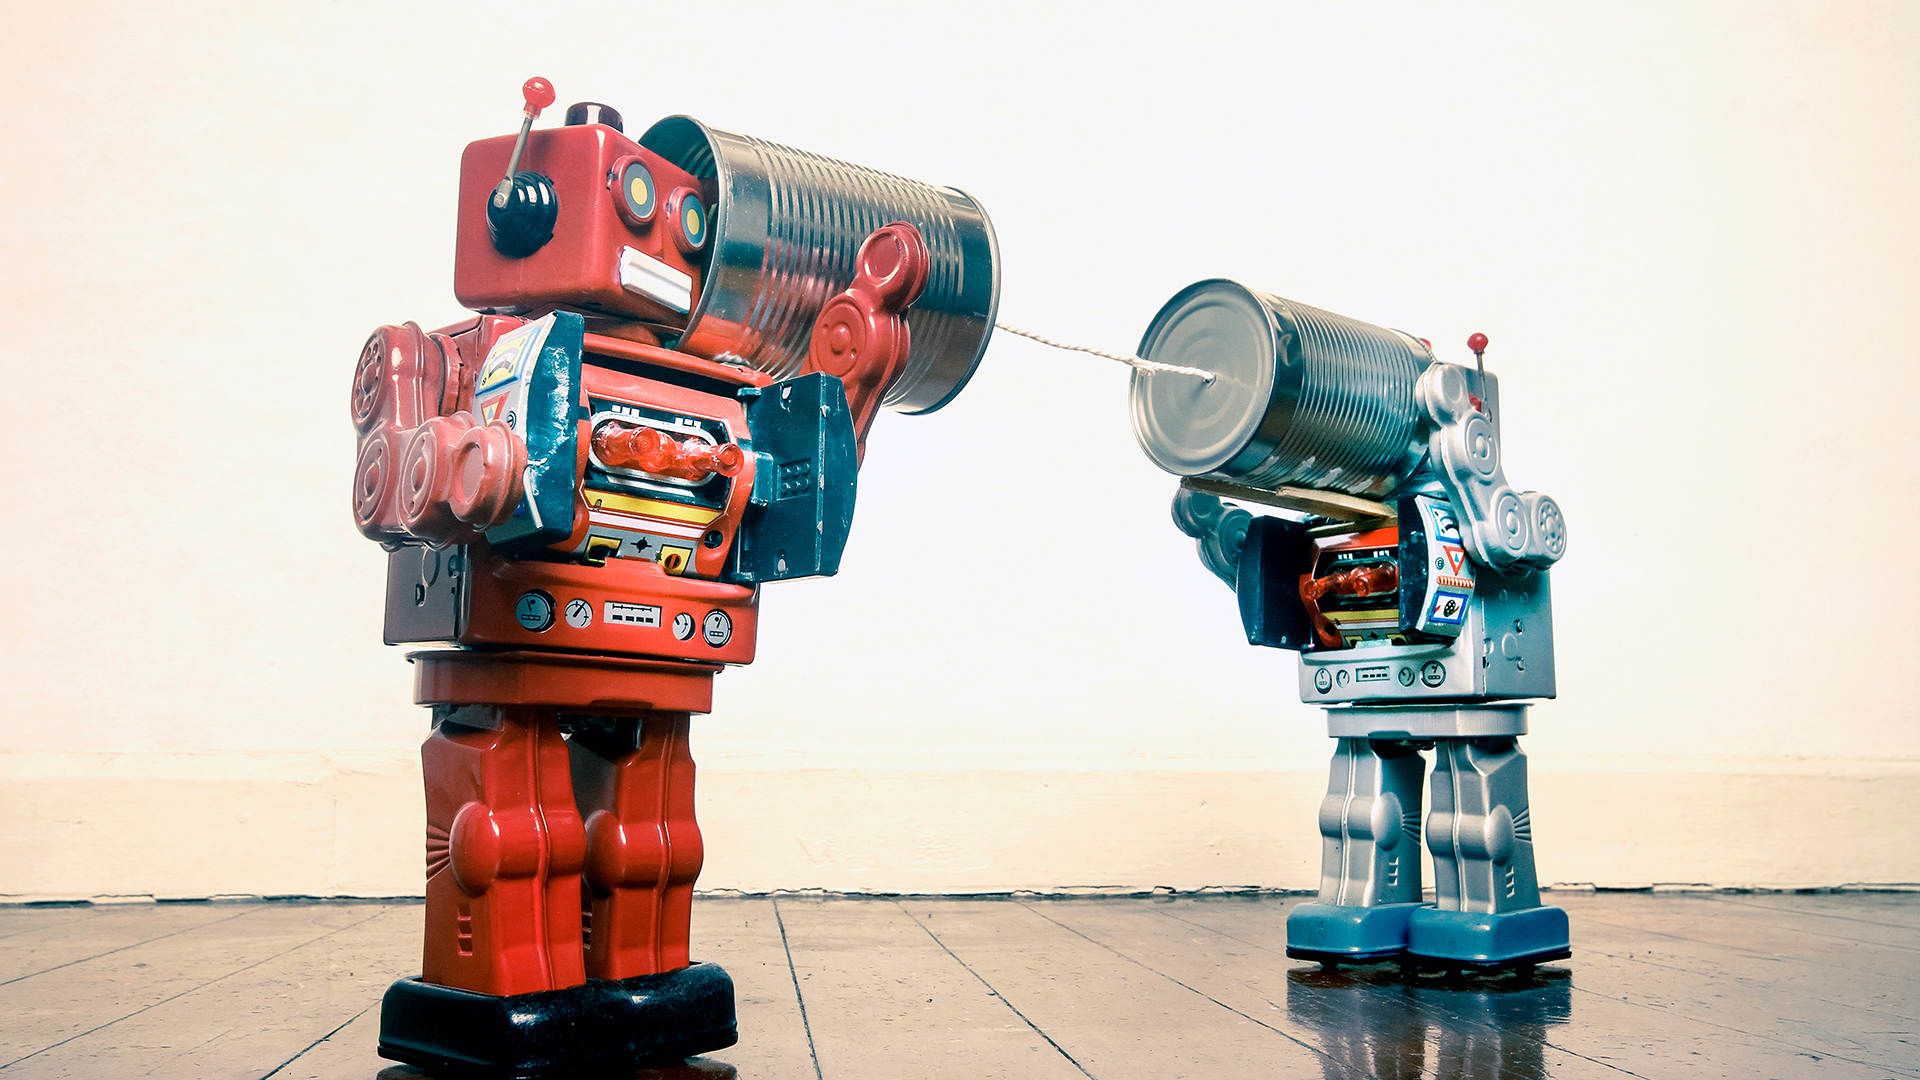 Image contains two robots and it depicts feedback